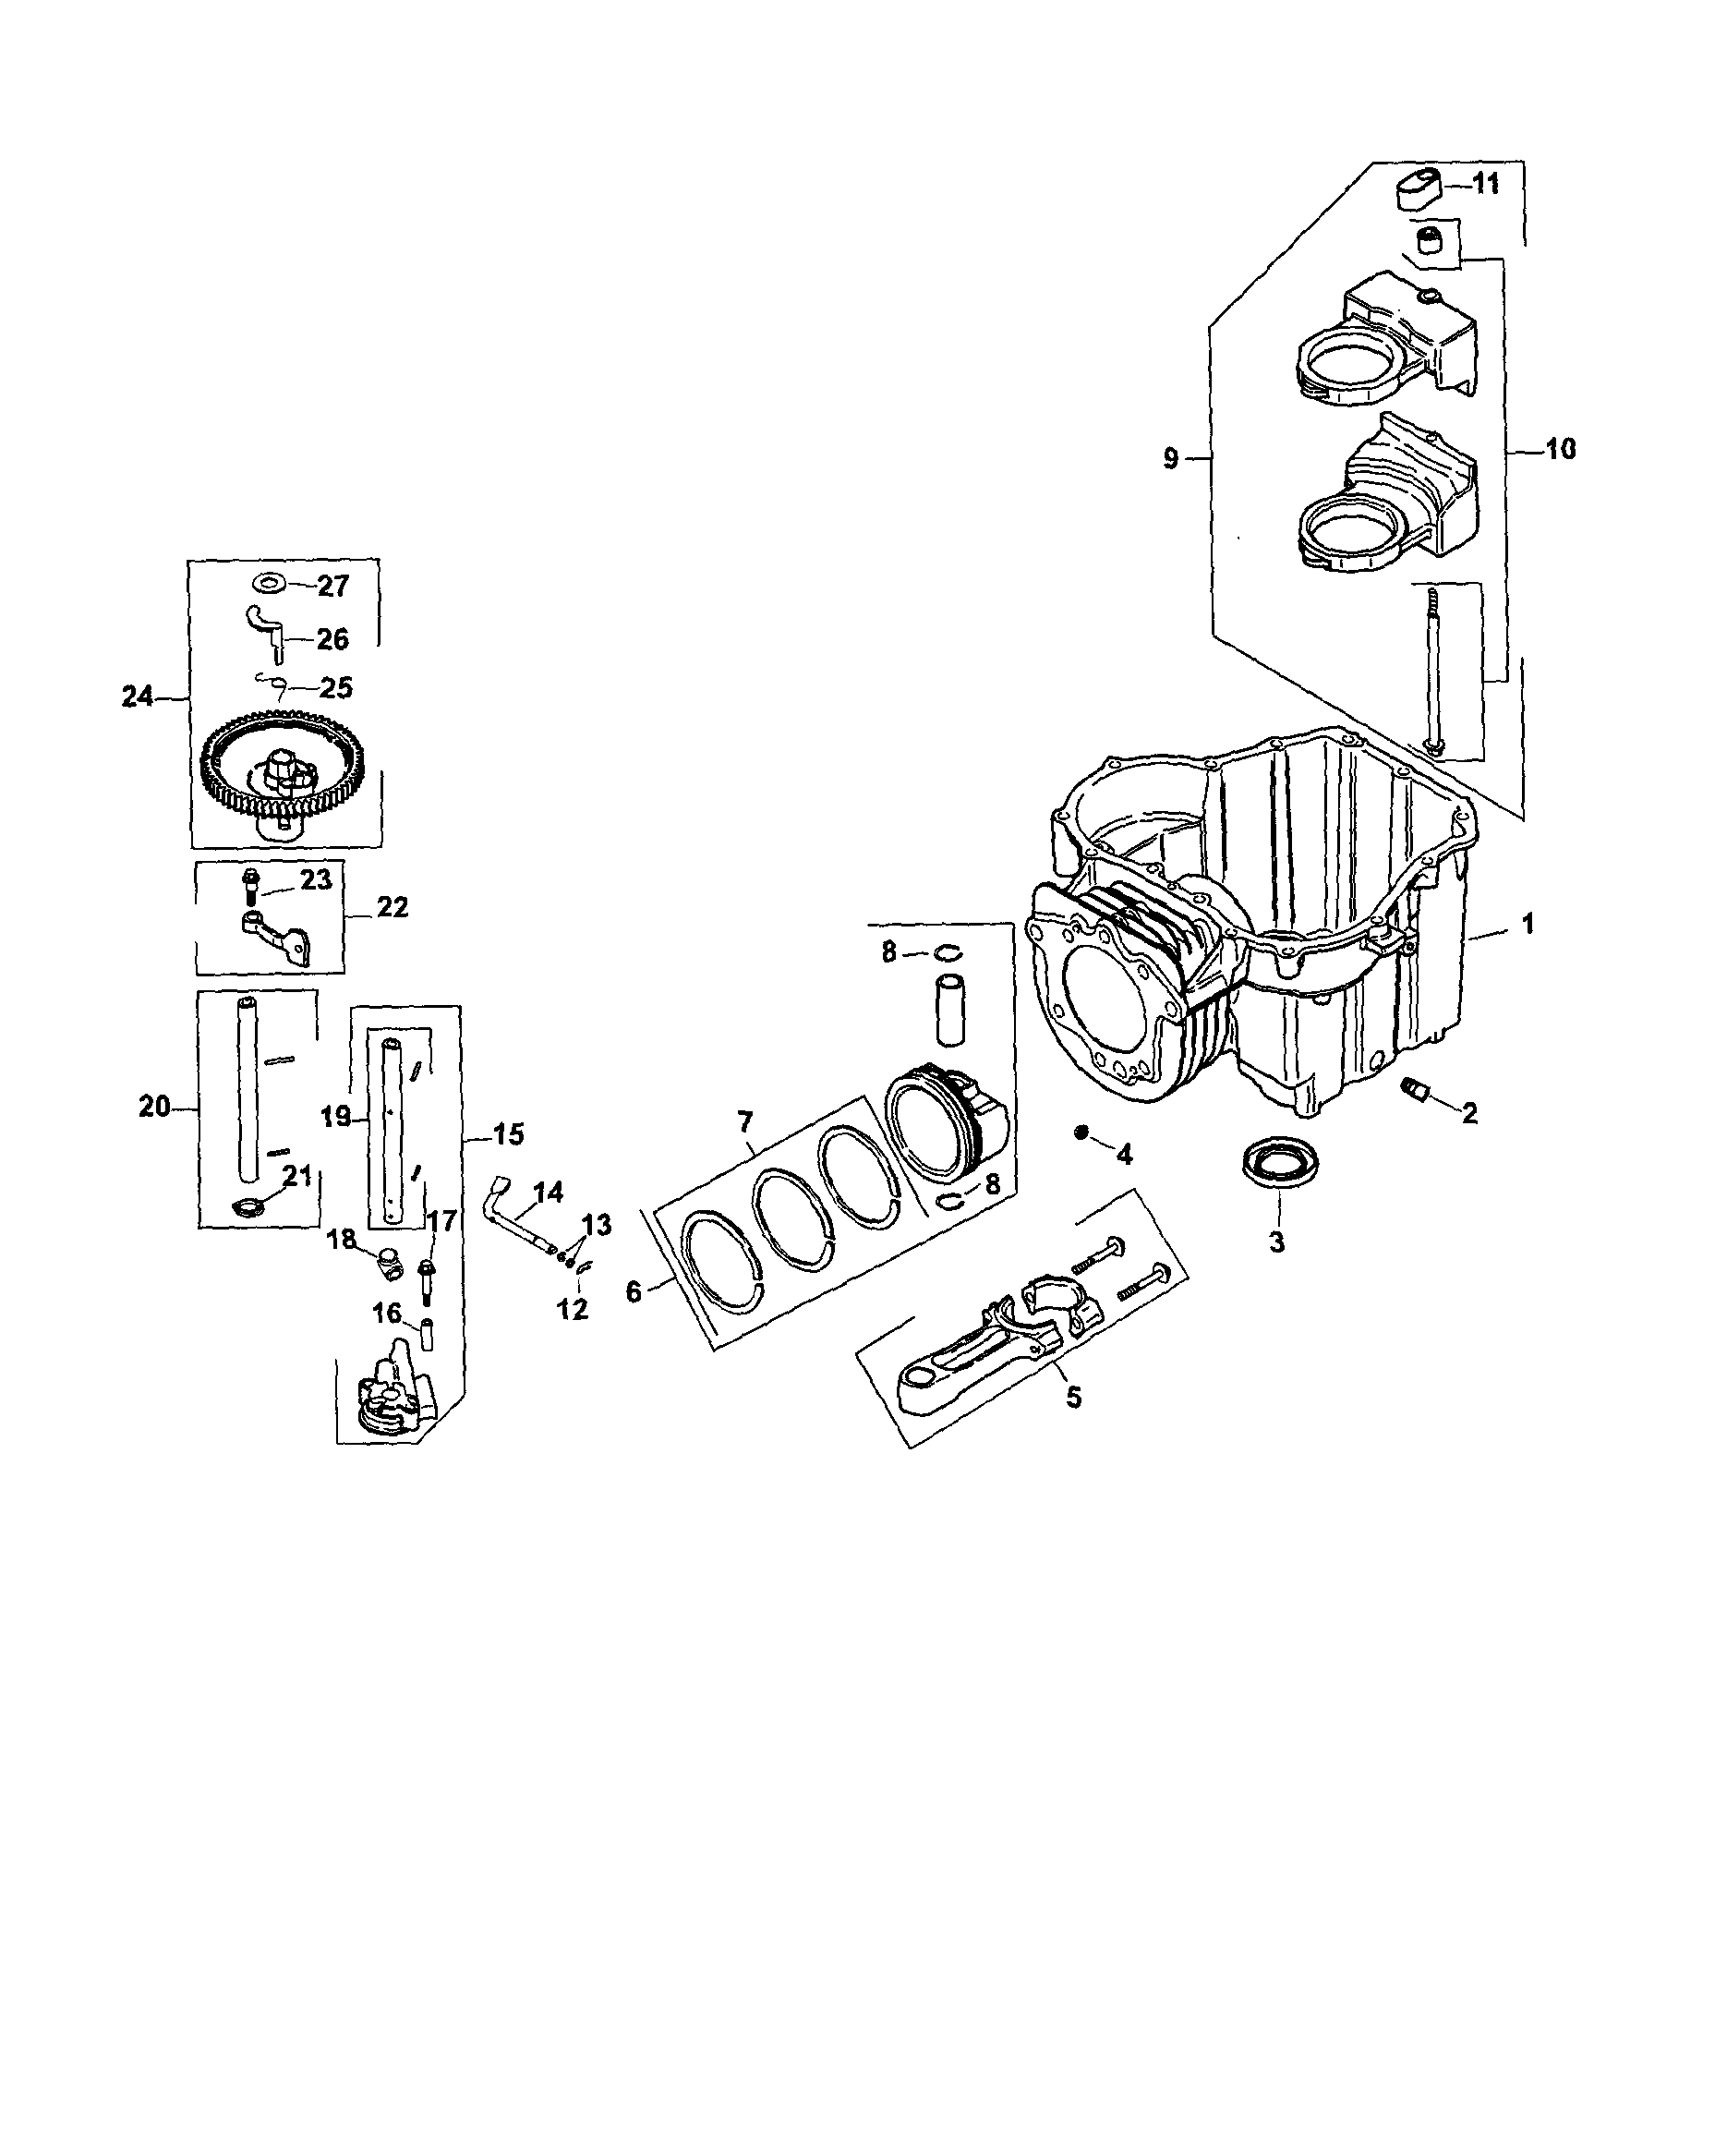 Kohler model SV600-0001 engine genuine parts